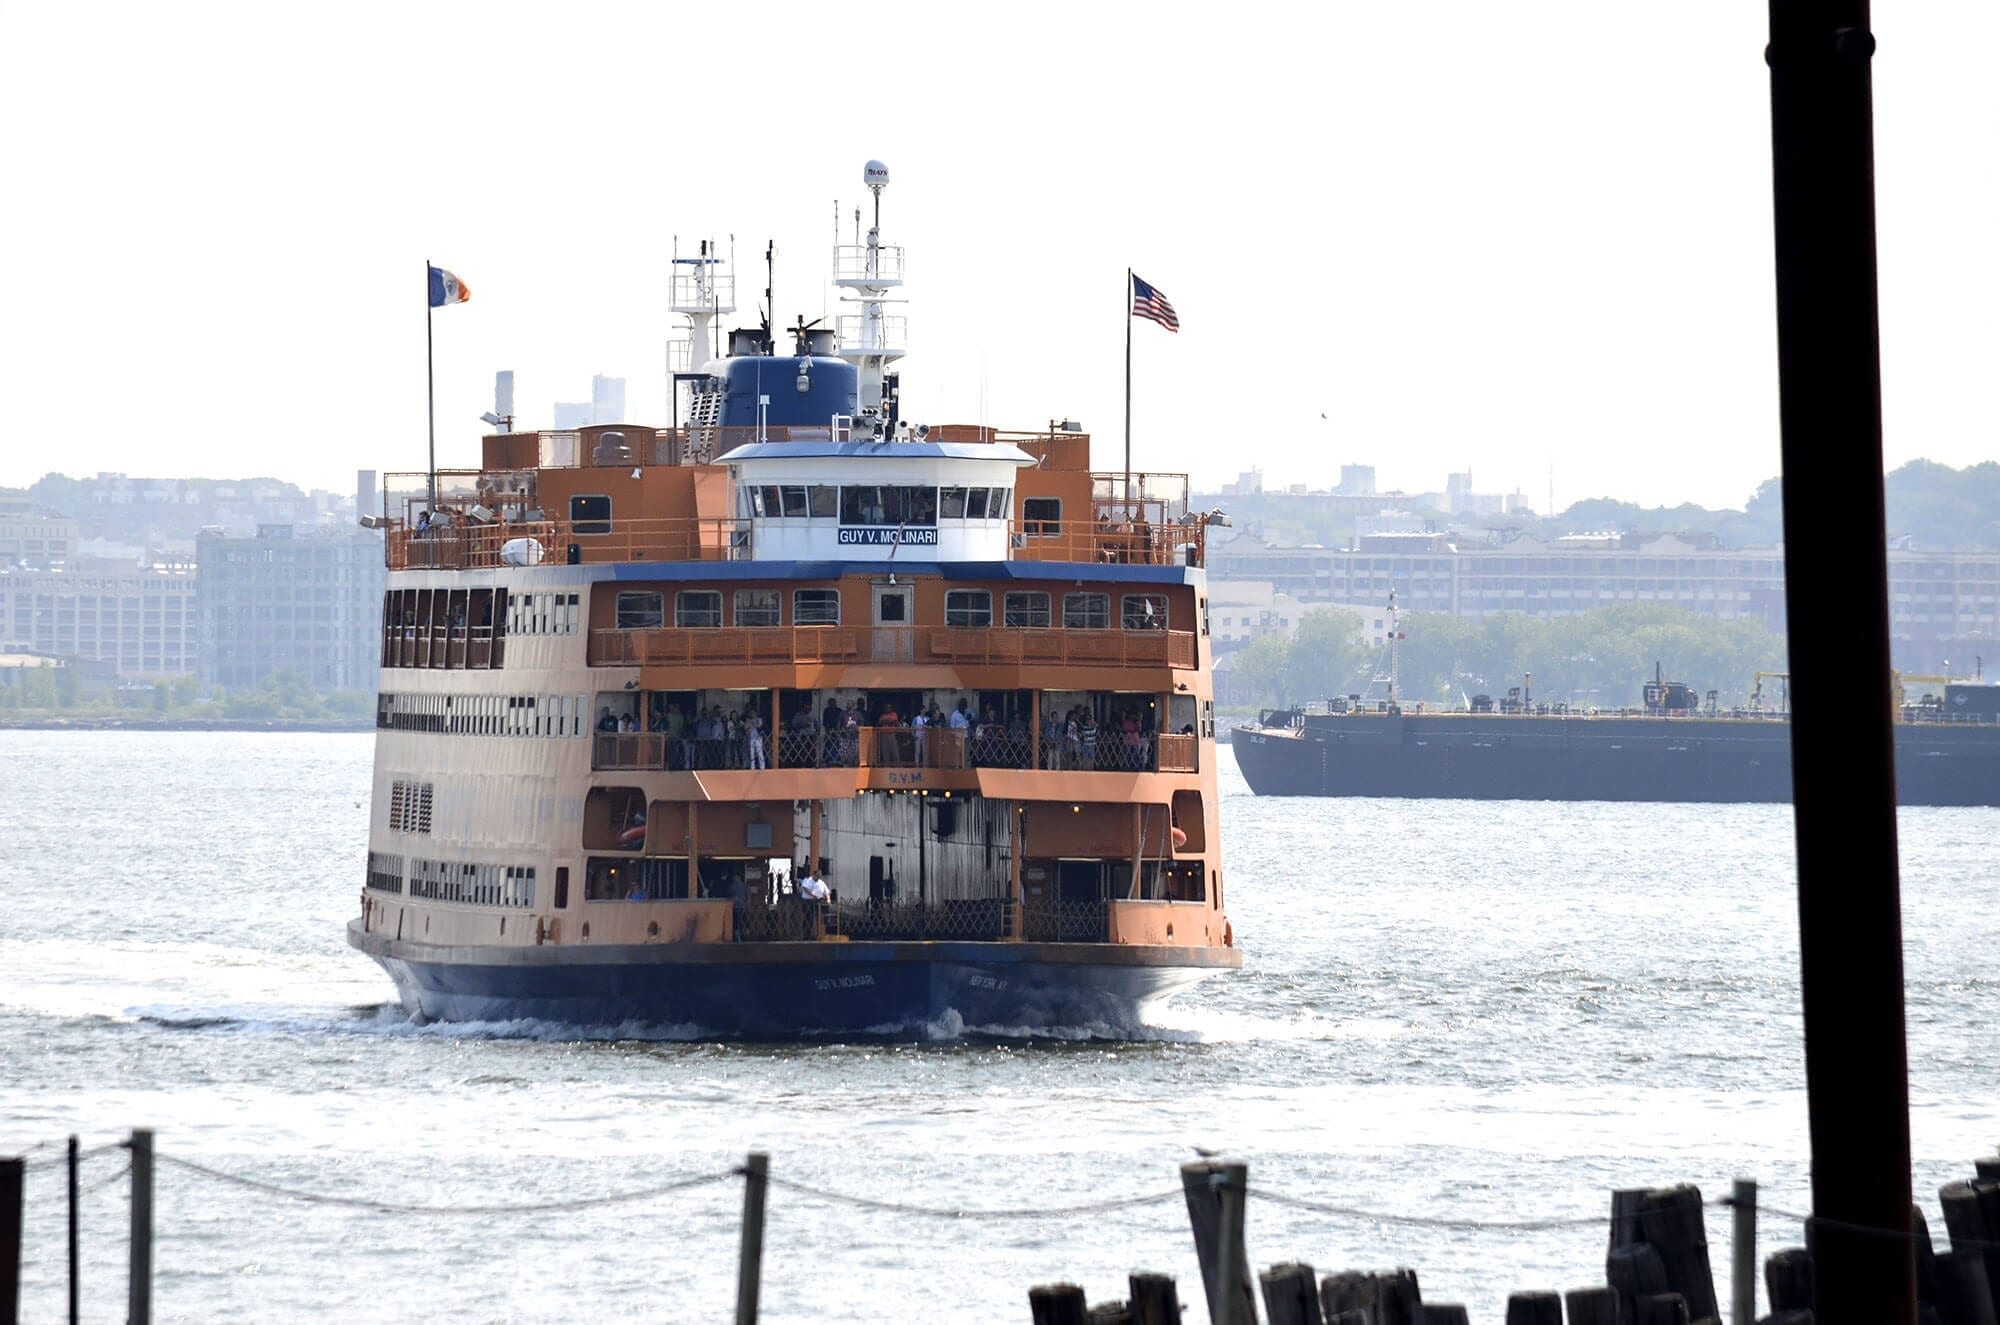 hudson river services and the staten island ferry